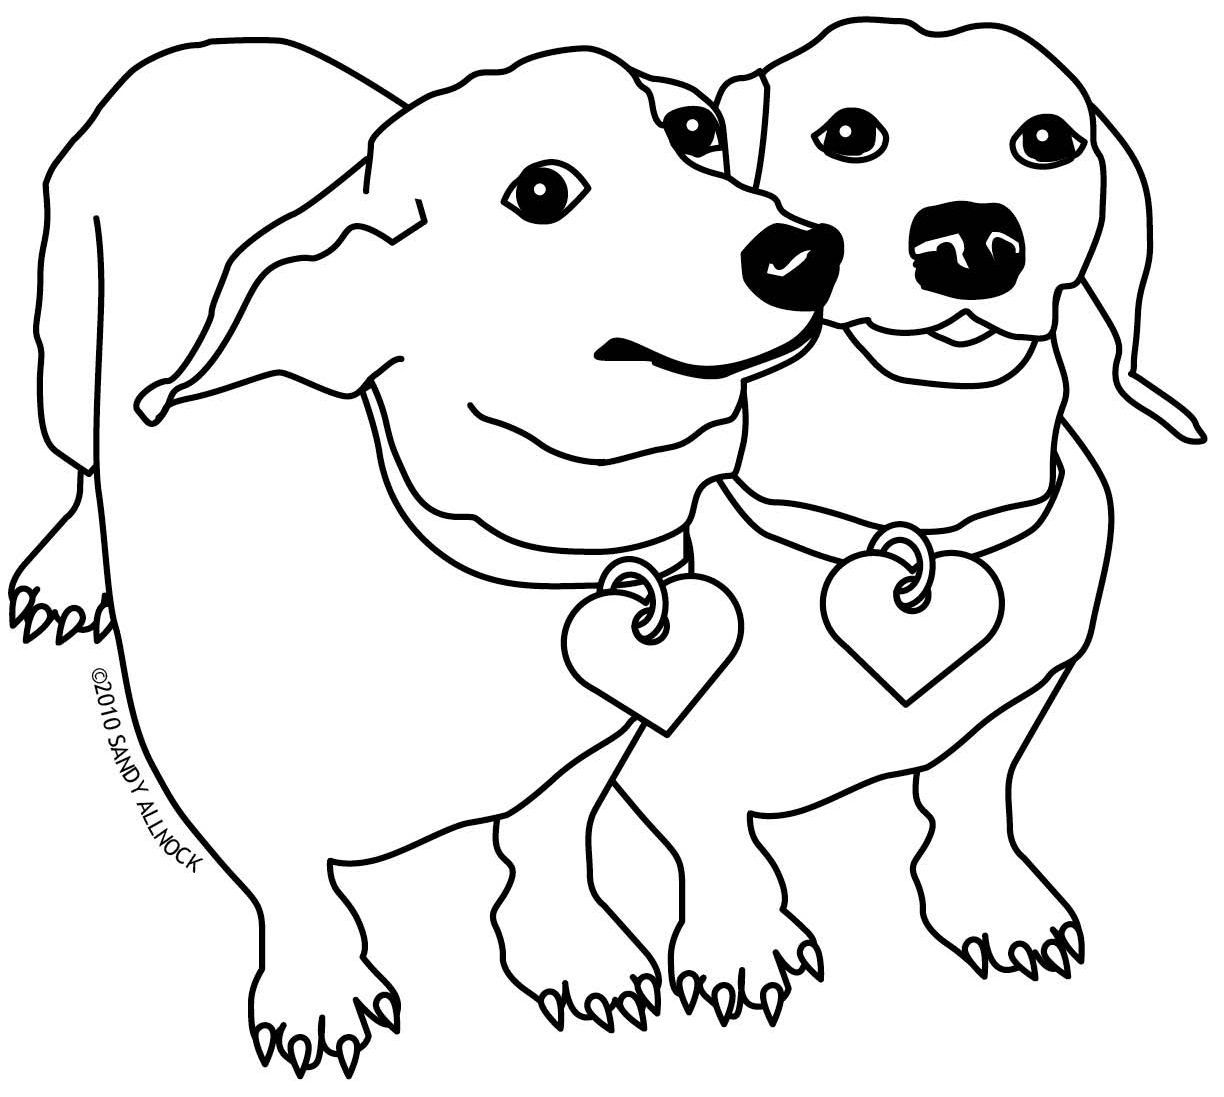 Dachshund Coloring Pages Free Http Www Wallpaperartdesignhd Us Dachshund Coloring Pages Free 47722 Dog Coloring Page Dog Coloring Book Dog Template